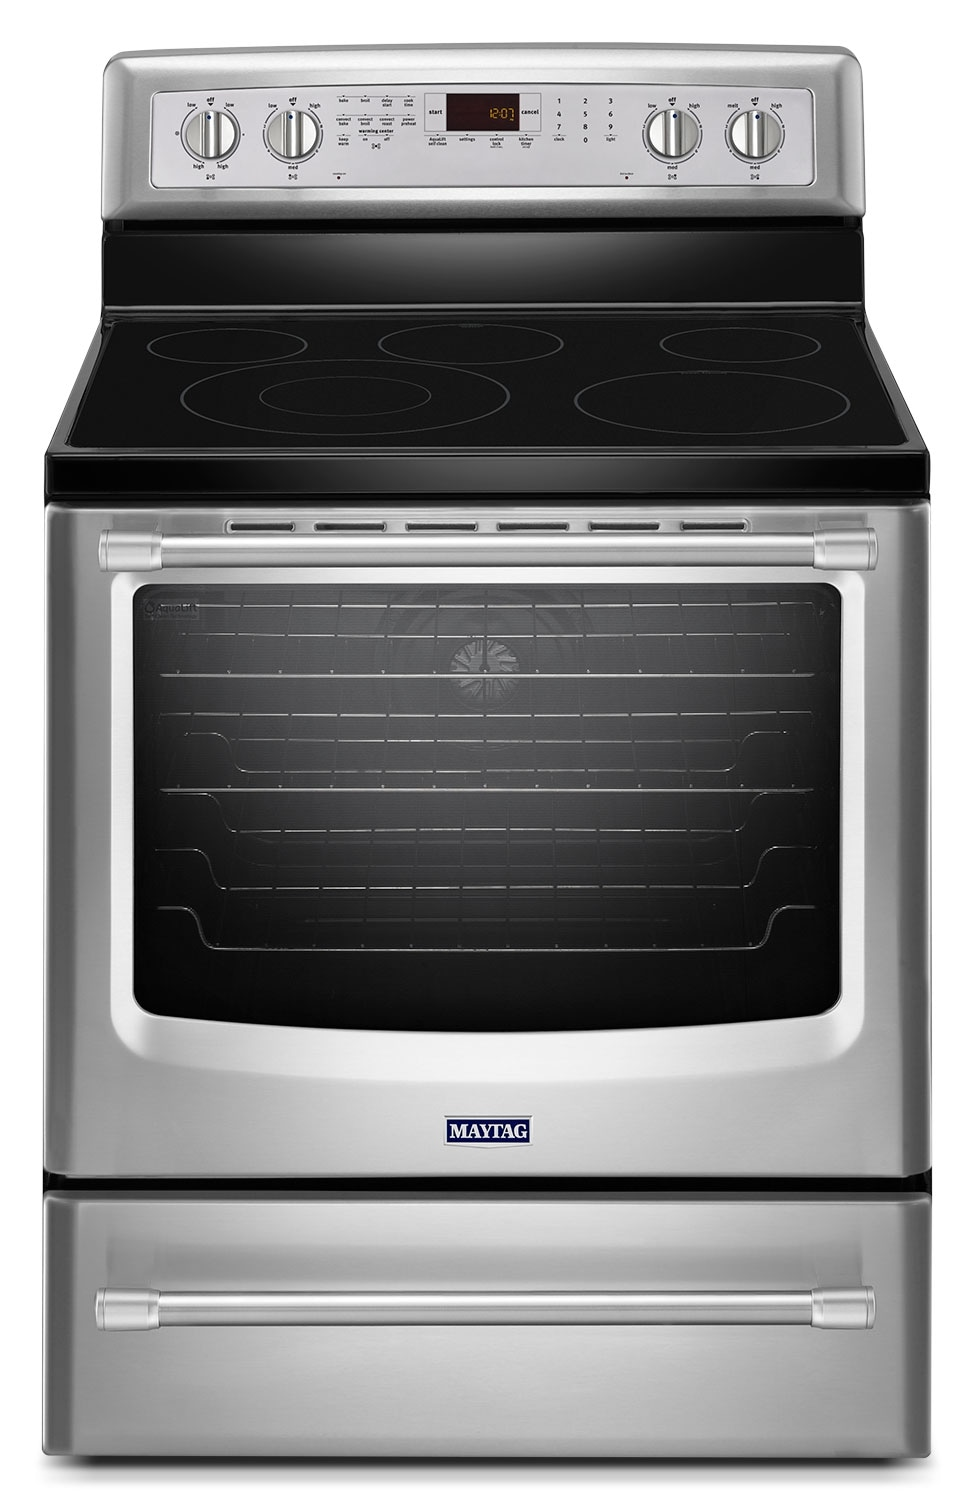 [Maytag Stainless Steel Freestanding Electric Convection Range (6.2 Cu. Ft.) - YMER8800DS]